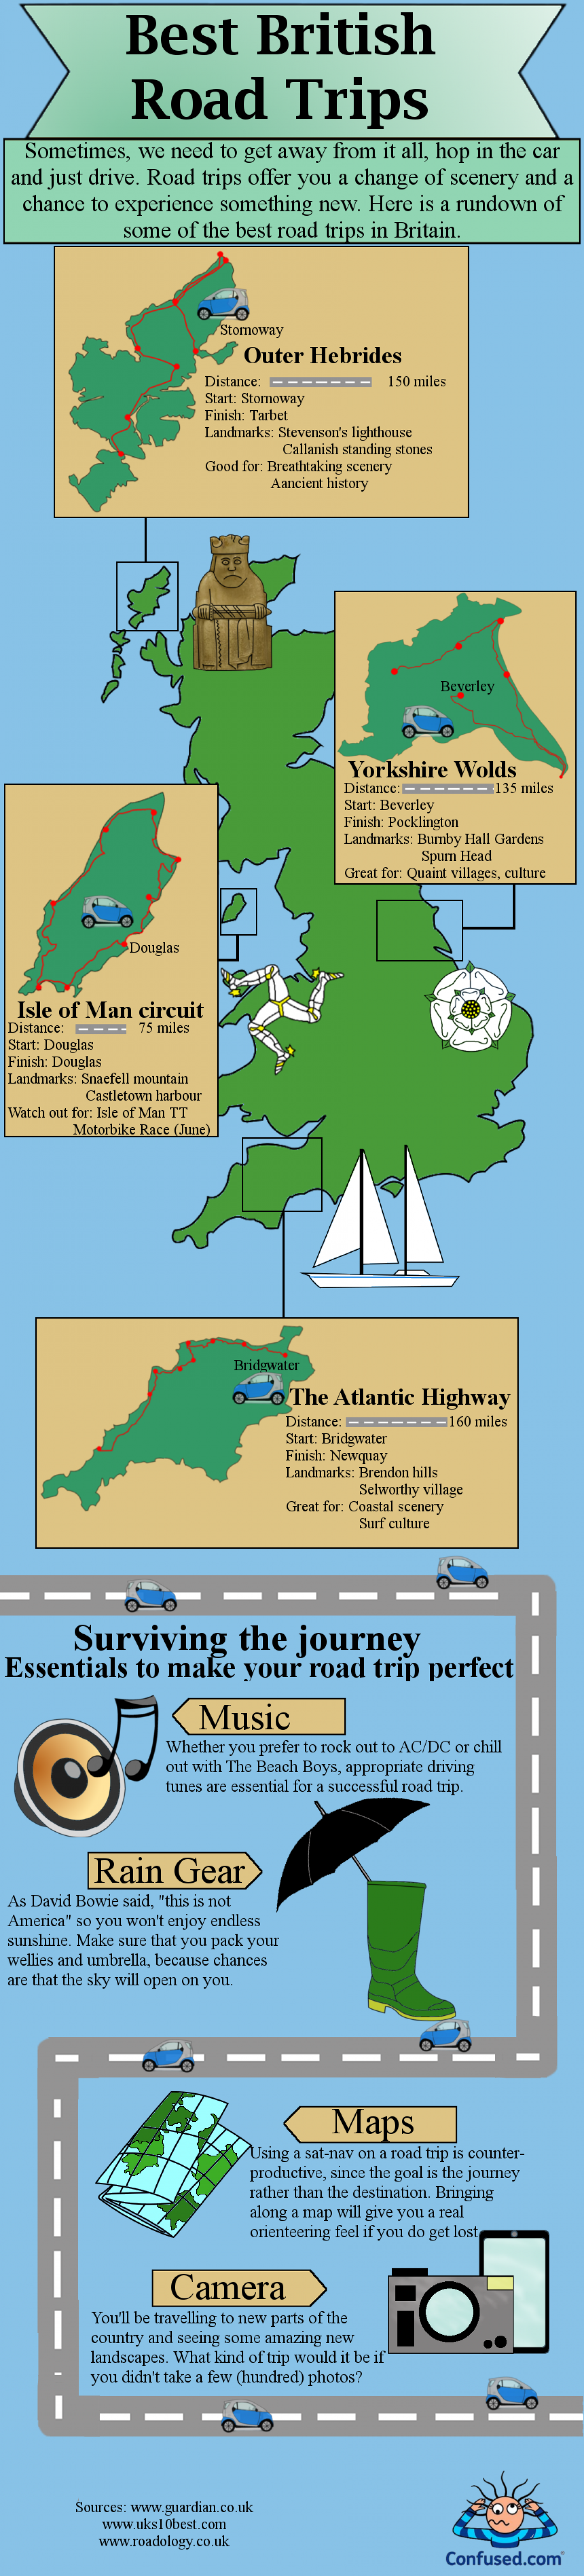 Best British Road Trips Infographic